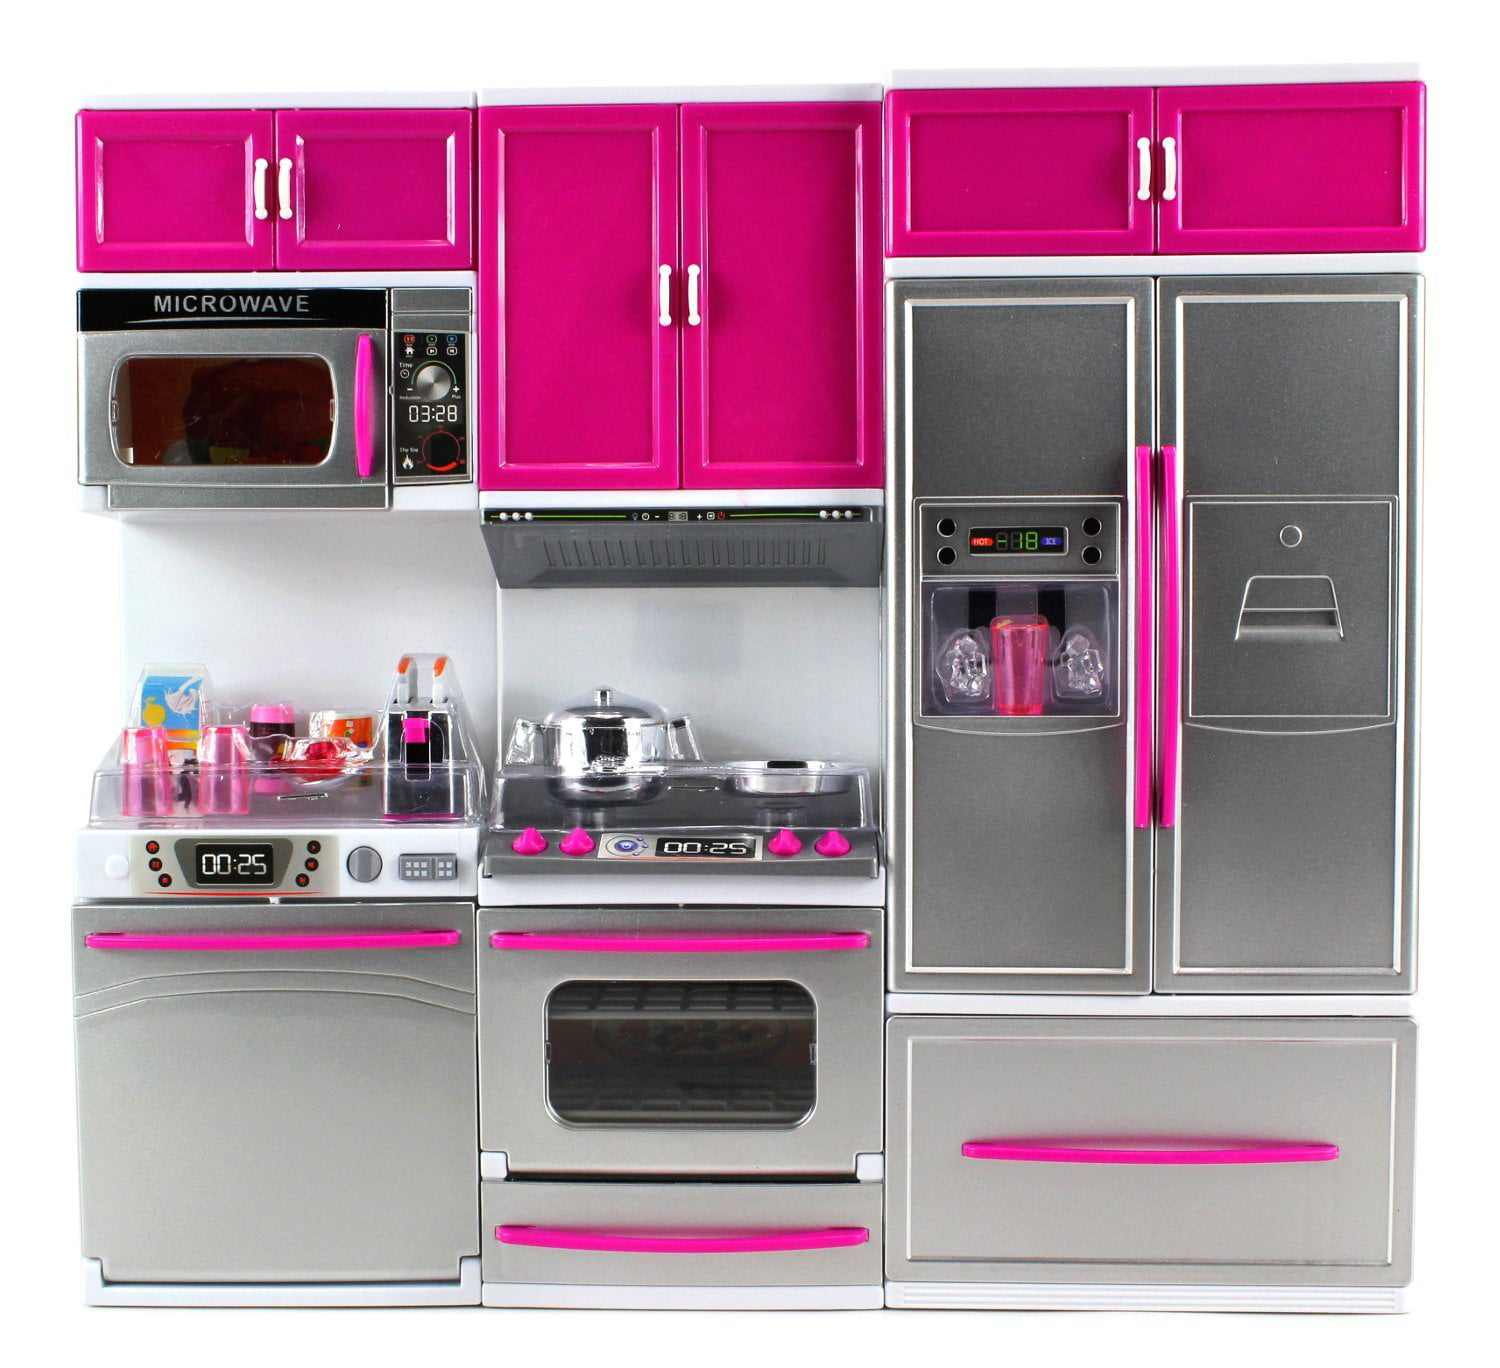 Kitchen Connection My Modern Kitchen Full Deluxe Kit Battery Operated Kitchen Playset Refrigerator Stove Microwave Pink Silver Walmart Com Walmart Com